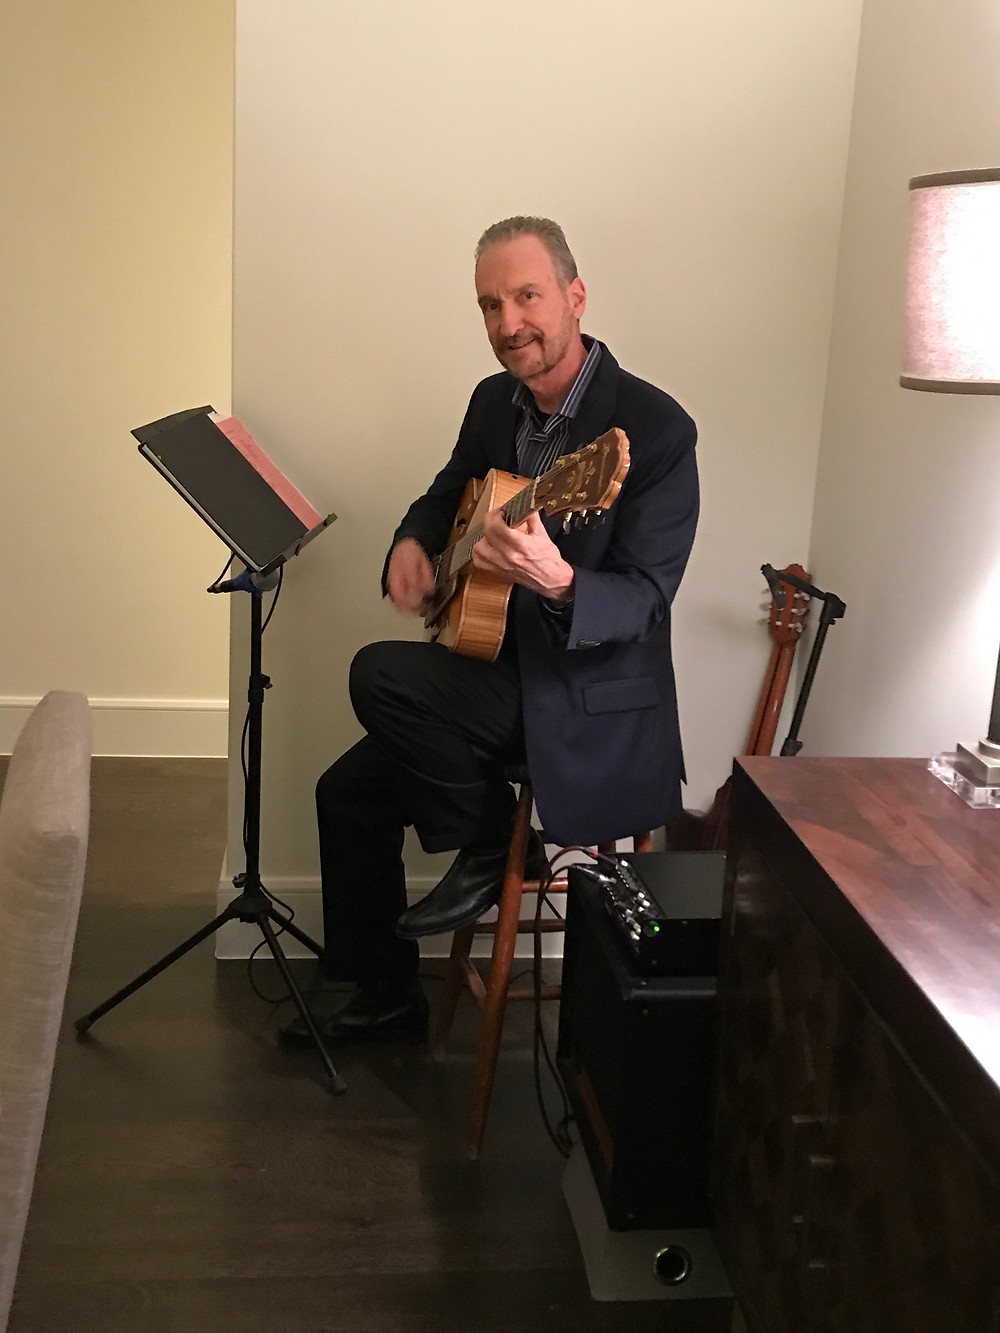 Guitar music for Highland Park party